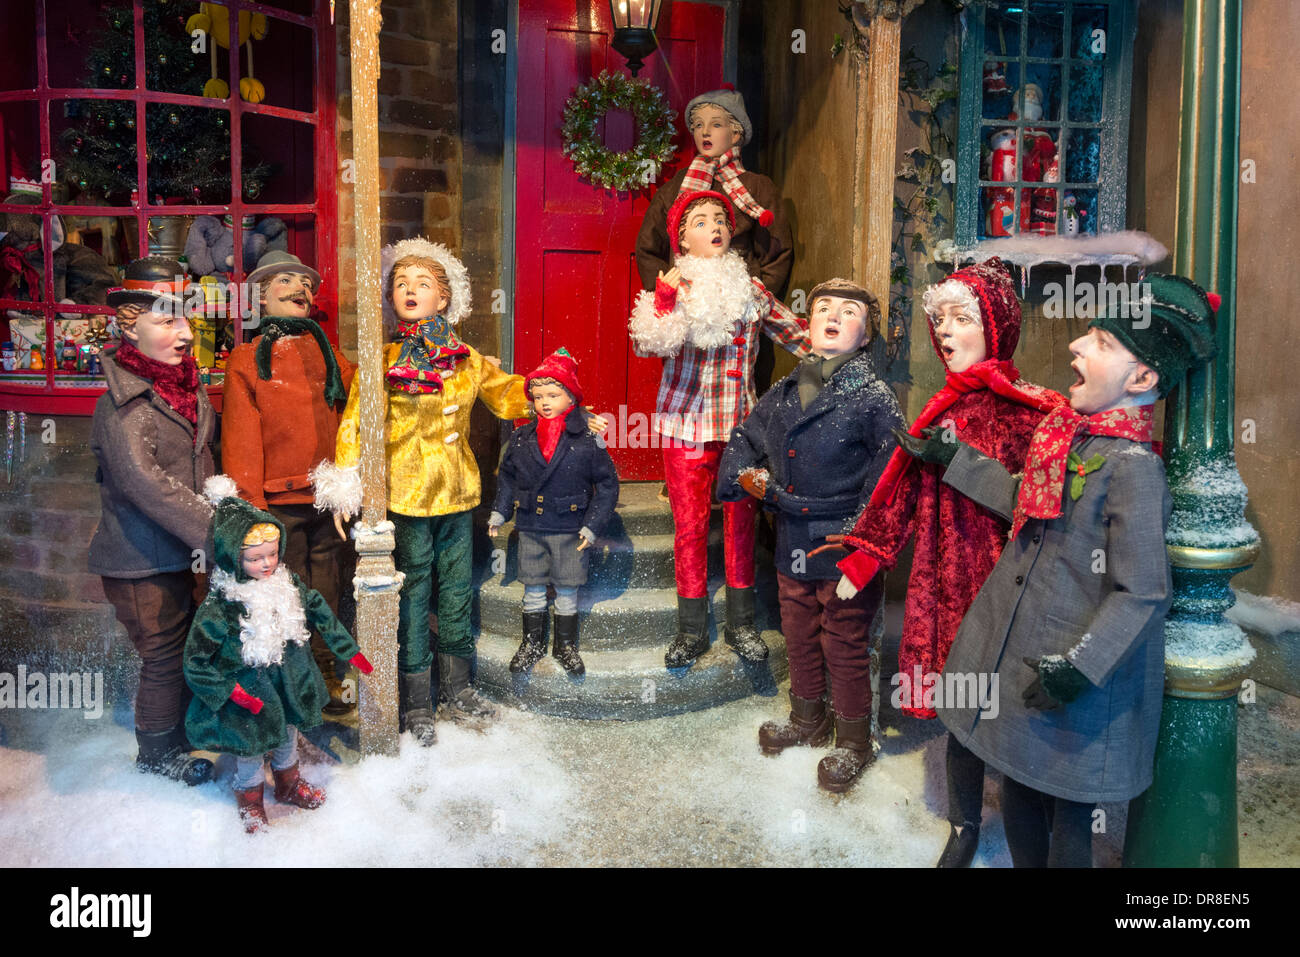 Christmas Carol Singers Ornaments.Carol Singers Stock Photos Carol Singers Stock Images Alamy